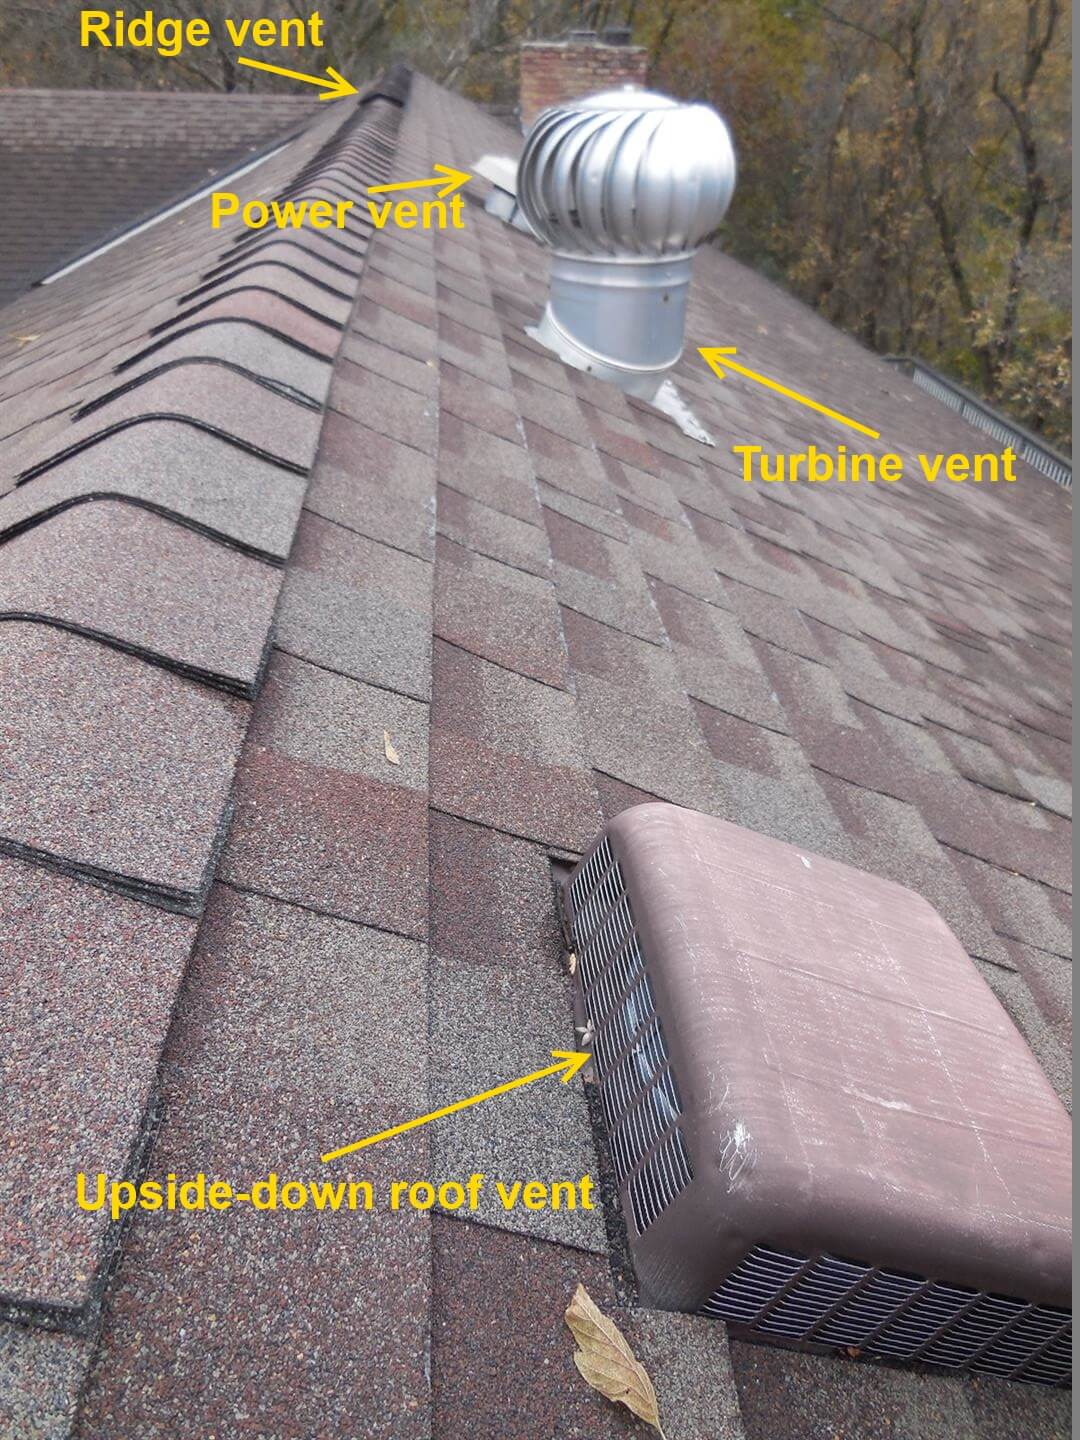 Roof Vents Problems And Solutions - What type of contractor installs bathroom vents